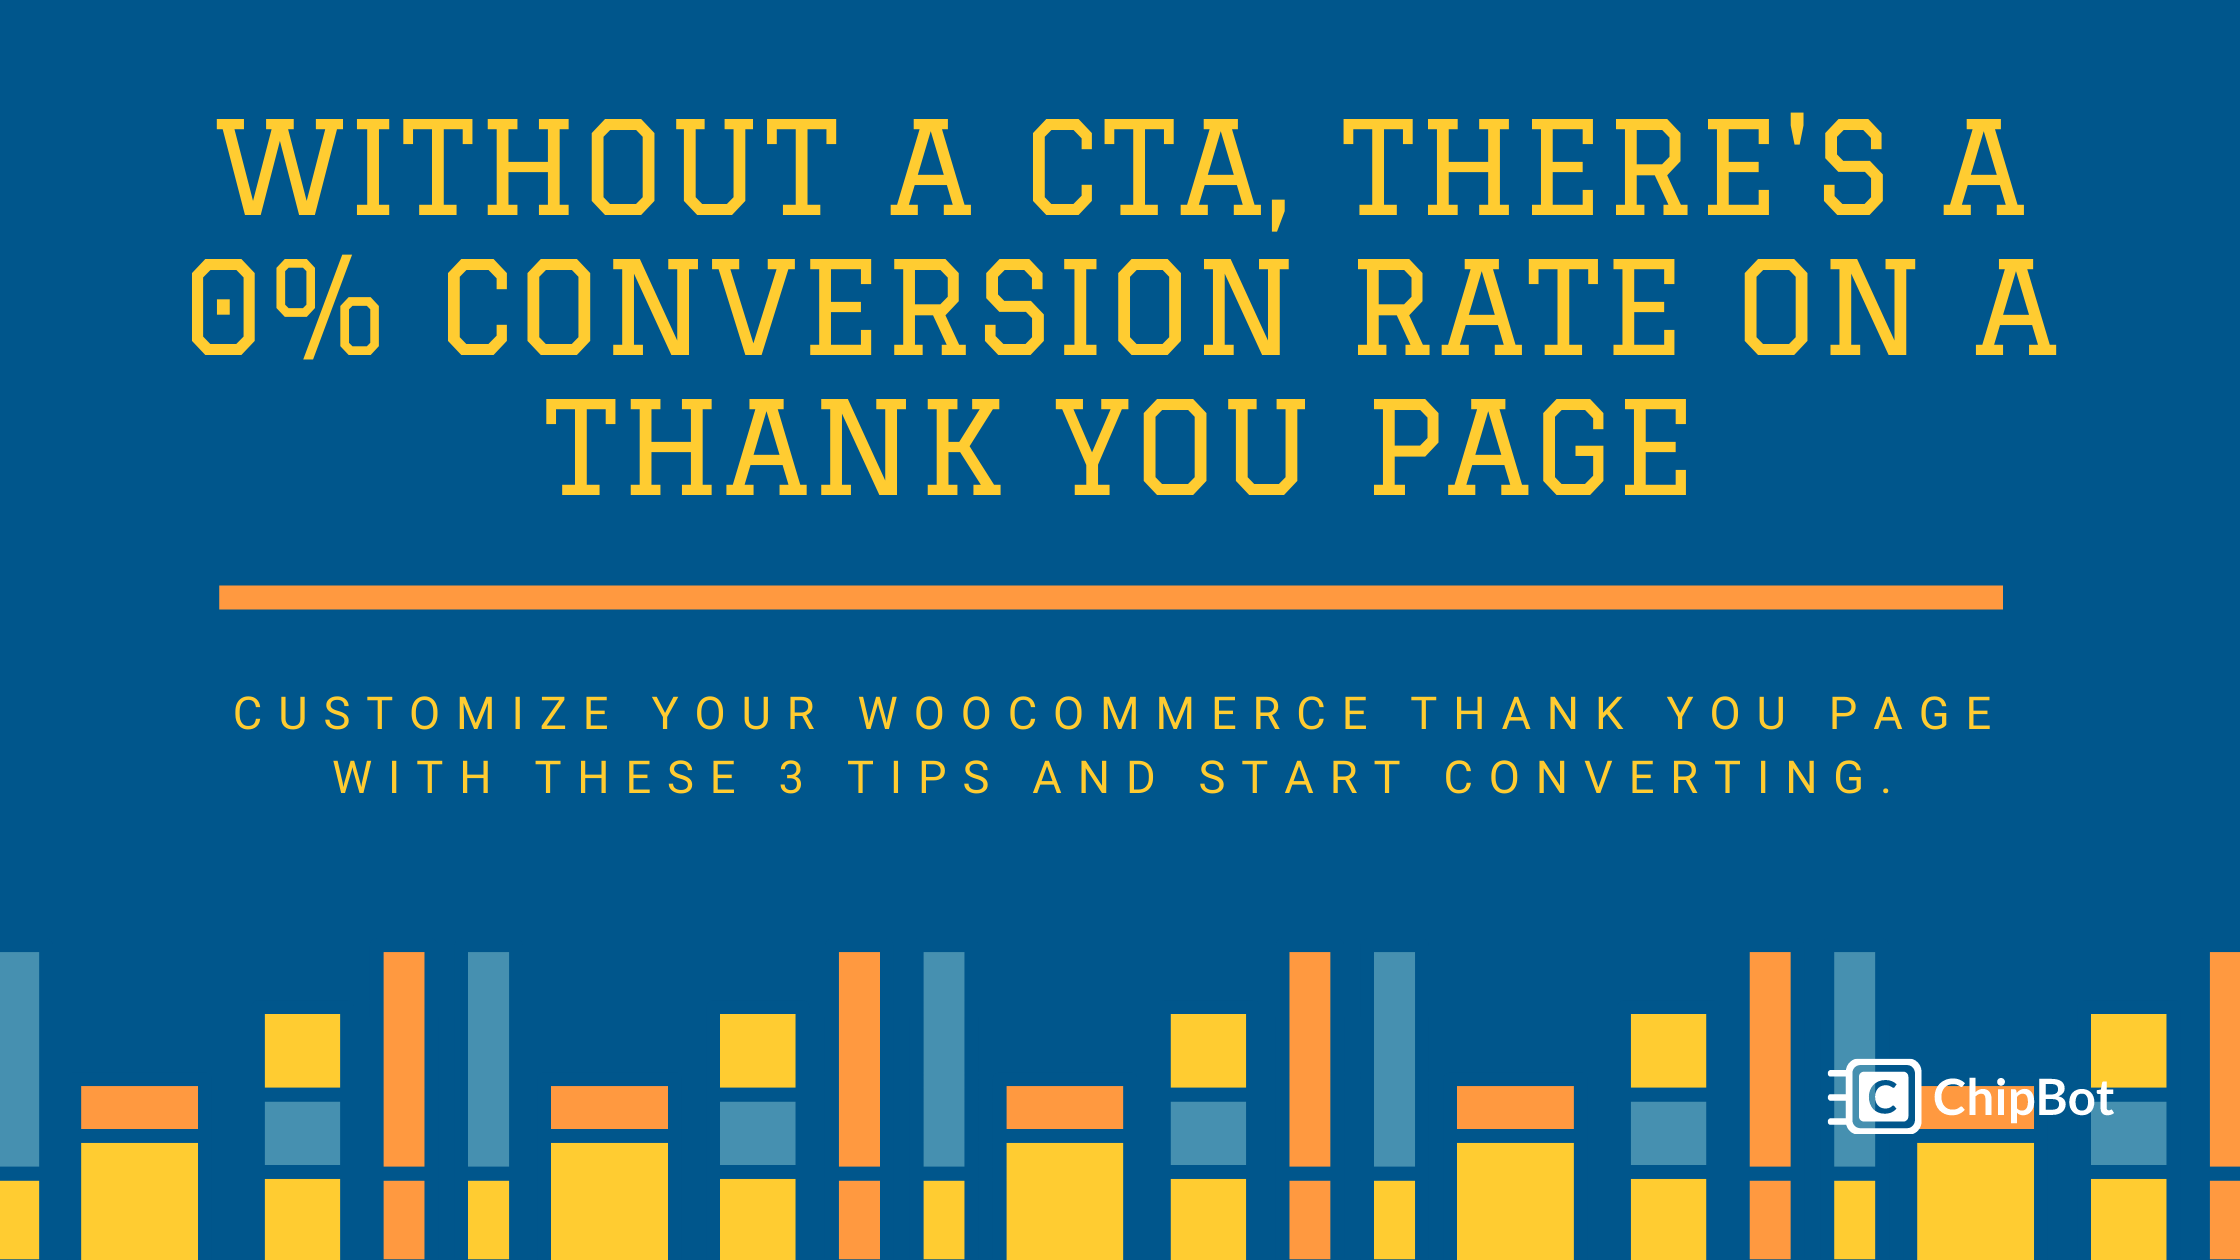 Leverage Your Woocommerce Thank You Page. It's Got Potential.